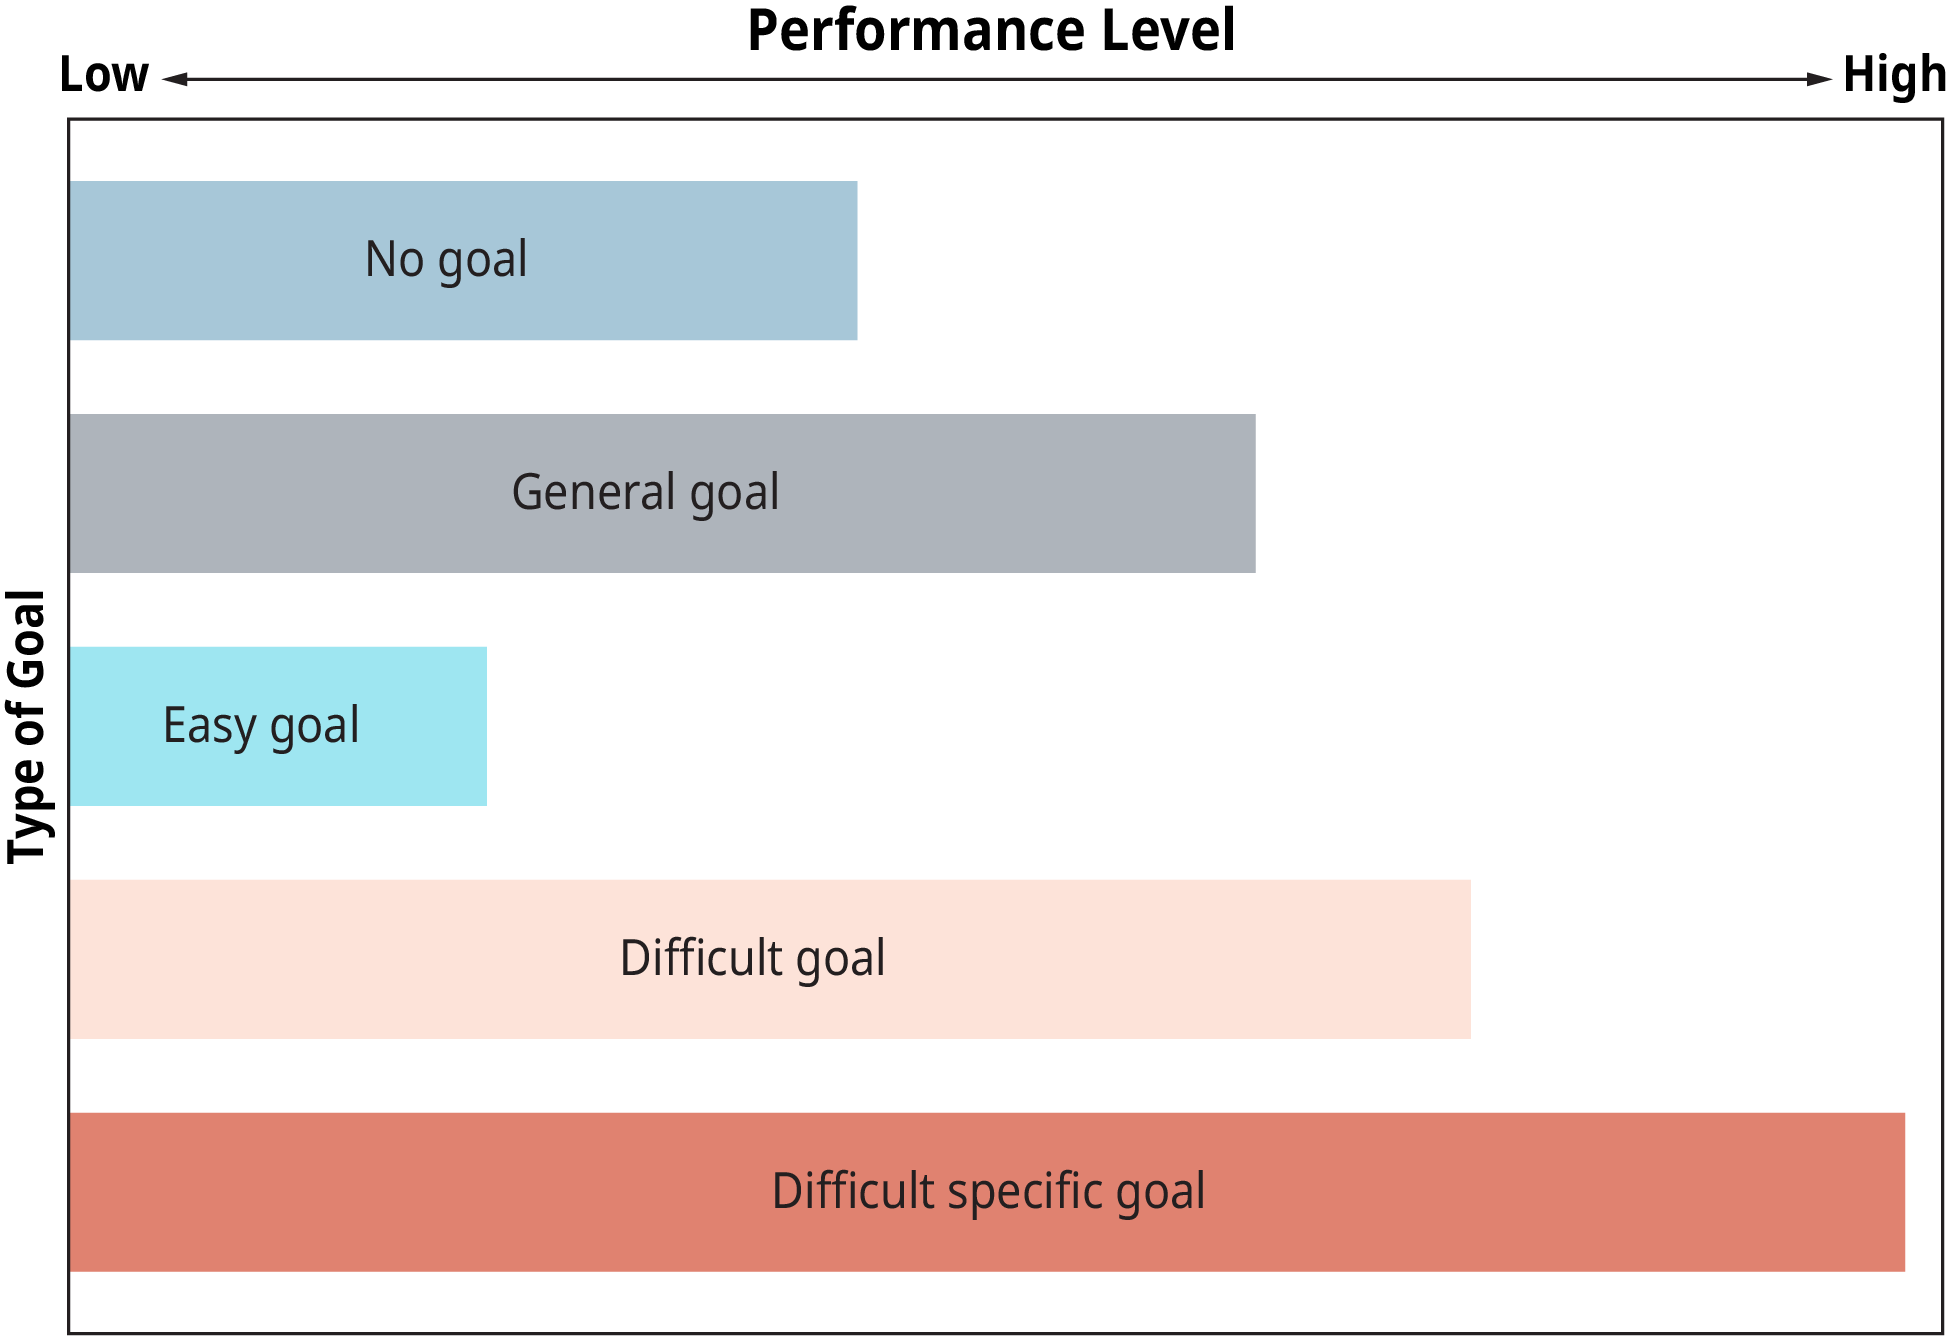 A graphical representation illustrates the effects of type of goal on performance.